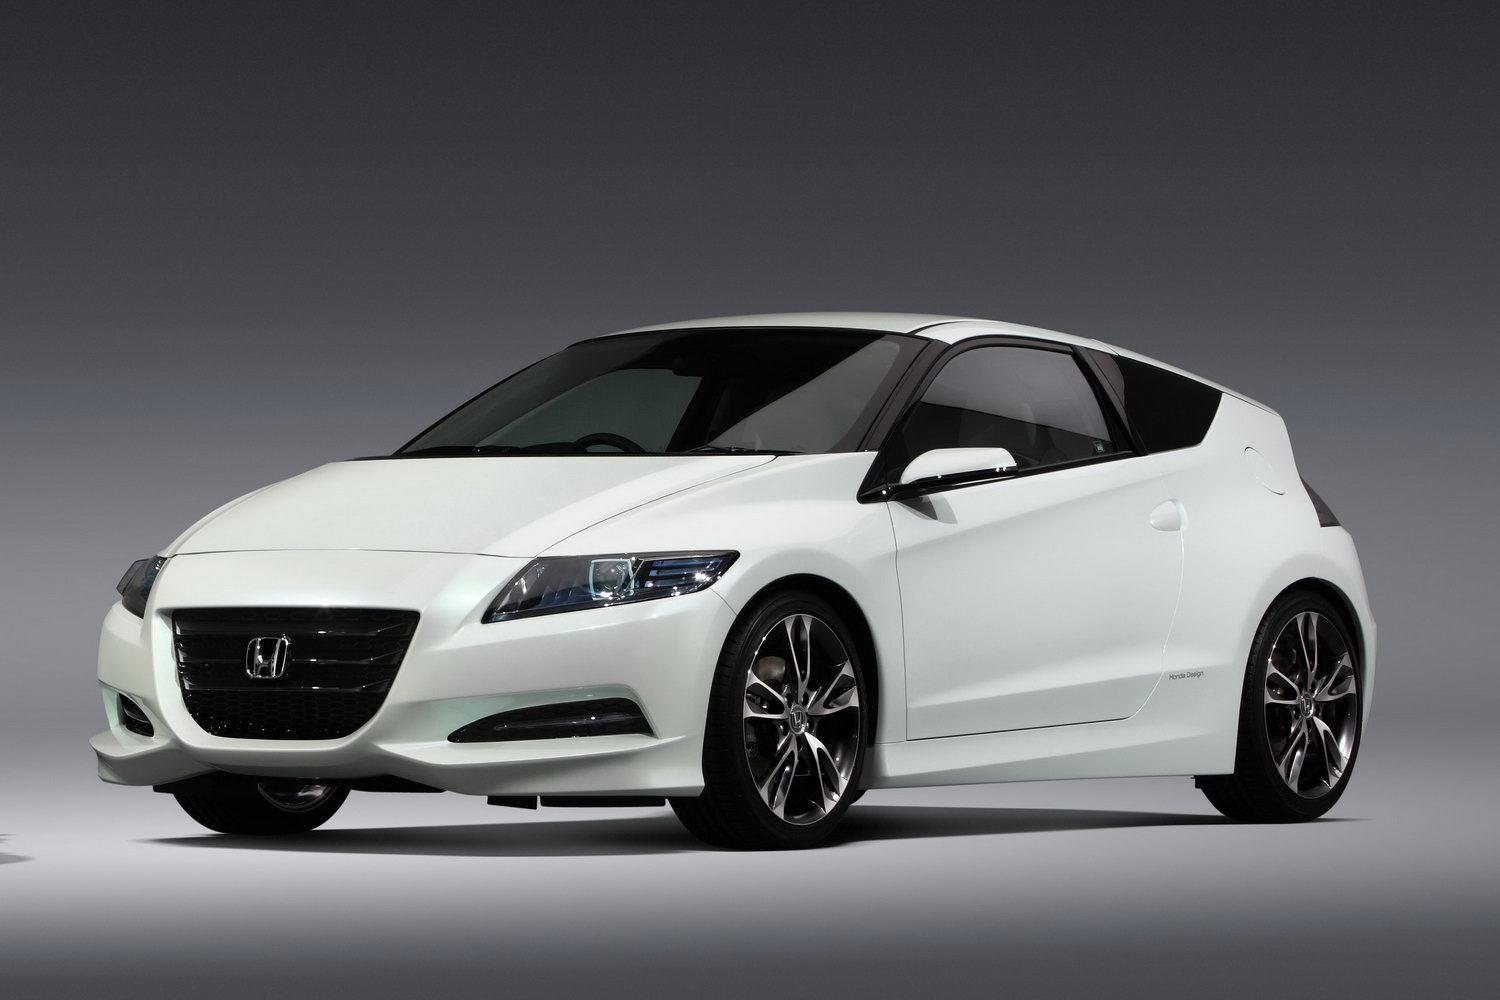 honda cr z sports hybrid 2019 prices in pakistan pictures. Black Bedroom Furniture Sets. Home Design Ideas